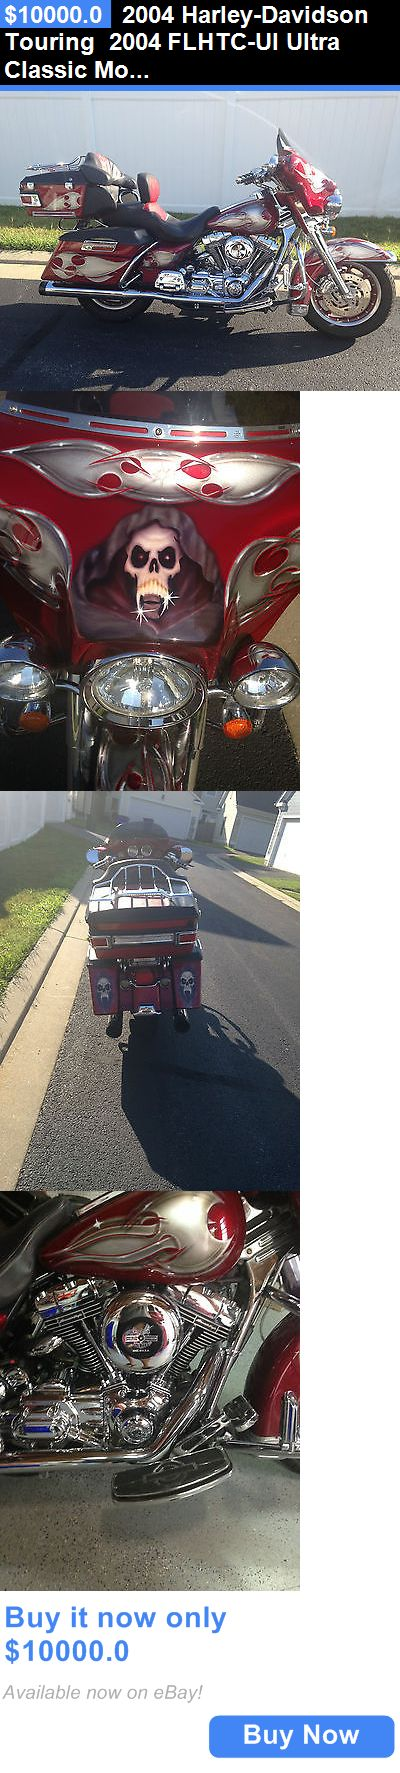 Motorcycles: 2004 Harley-Davidson Touring 2004 Flhtc-Ui Ultra Classic Motorcycle BUY IT NOW ONLY: $10000.0